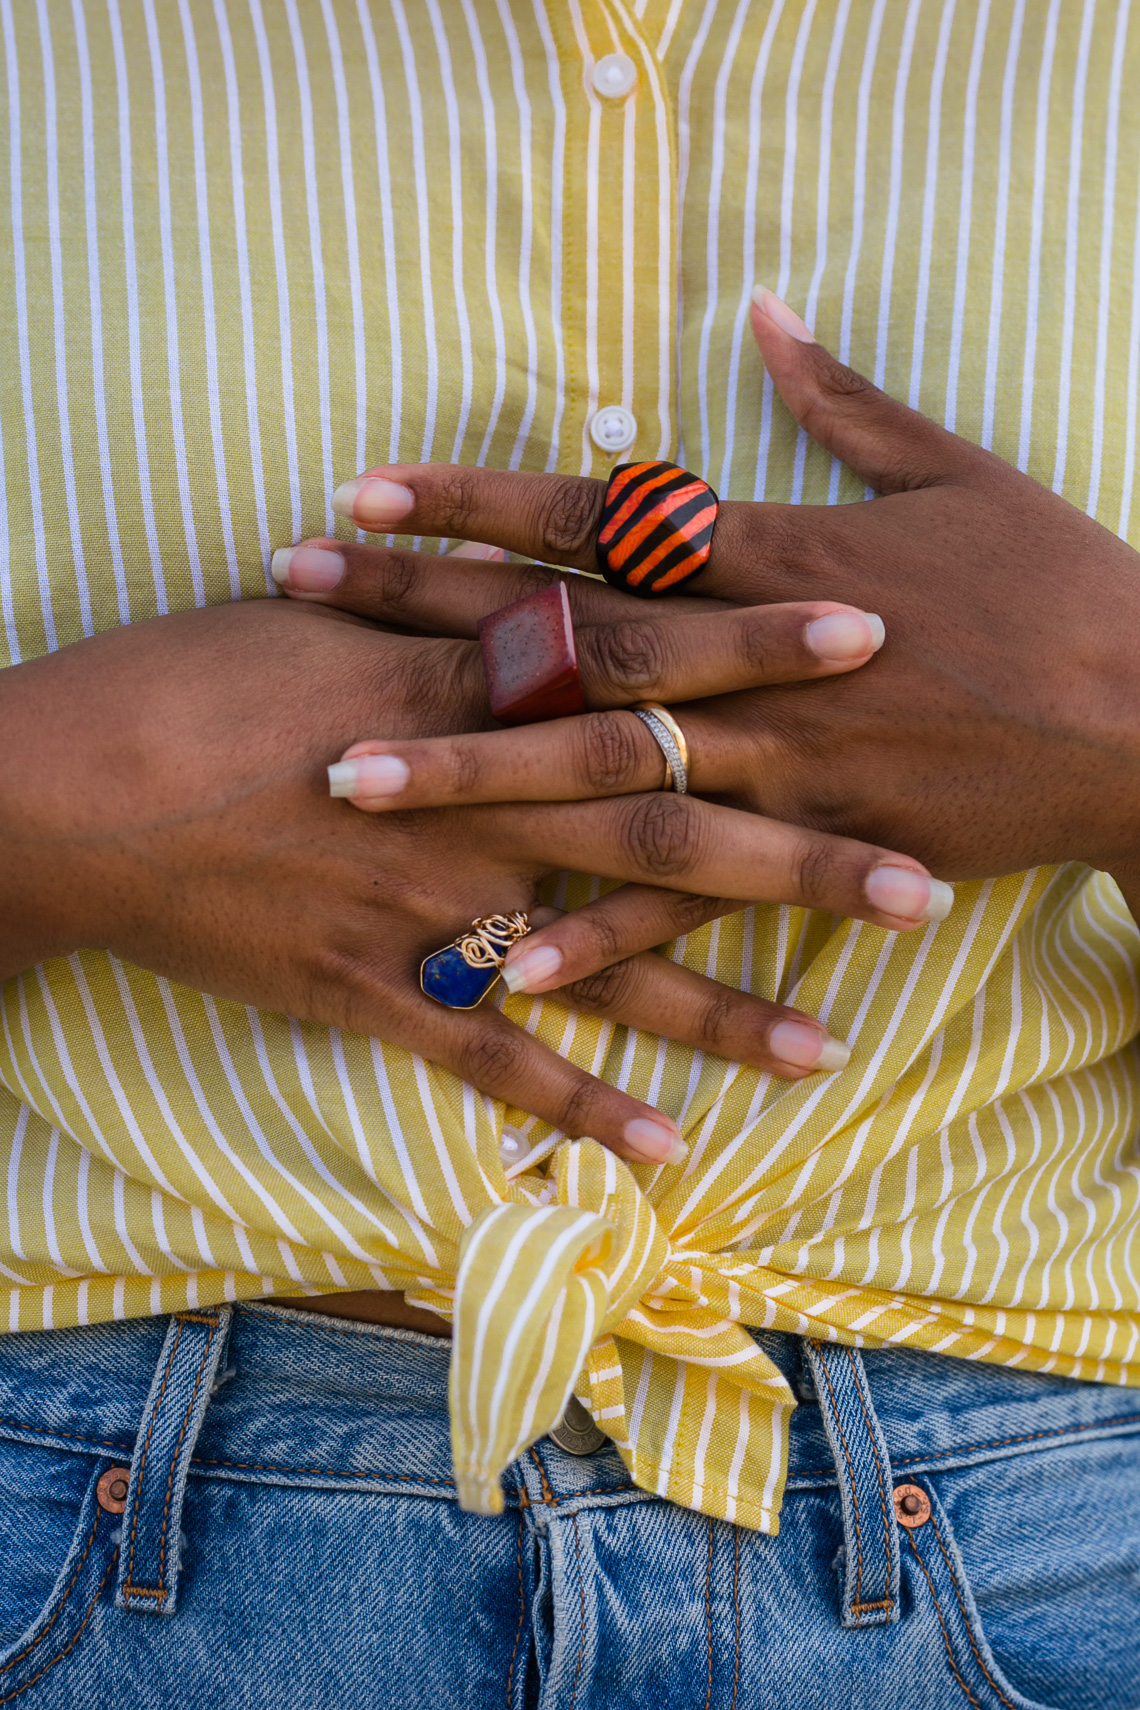 rings-levis-summer outfit-h&m-jeans-denim-yellow shirt